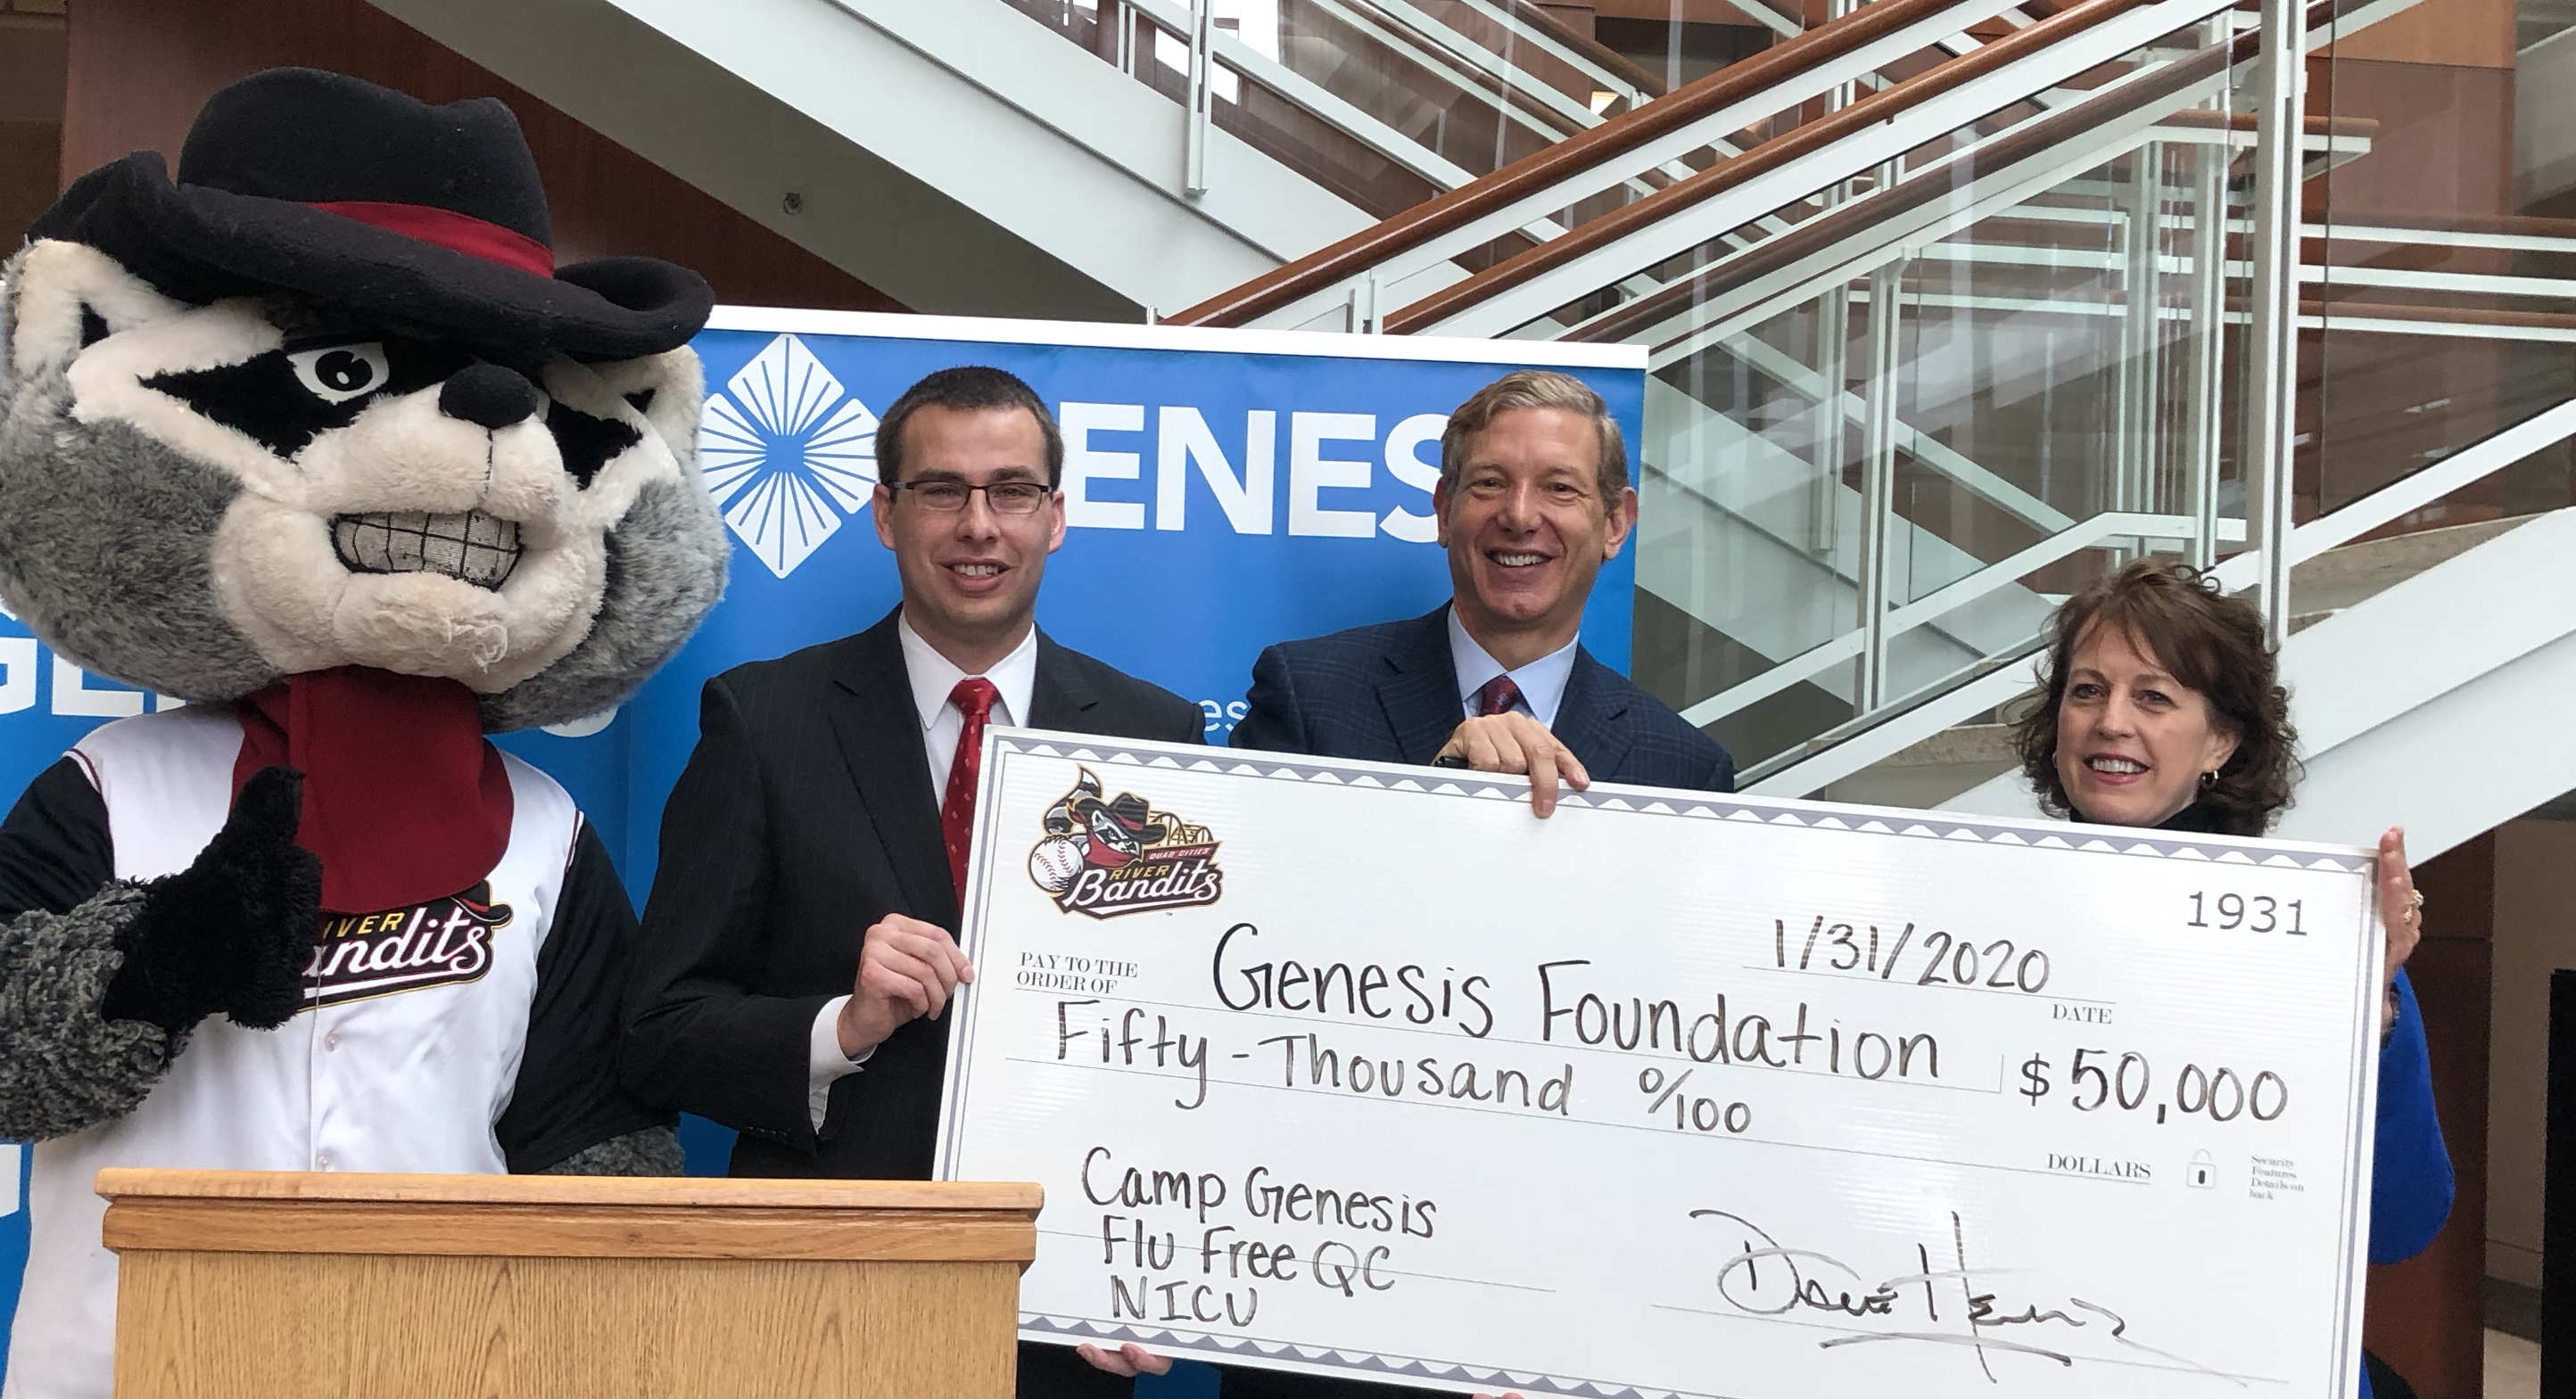 Dave presenting a check supporting the Genesis Foundation